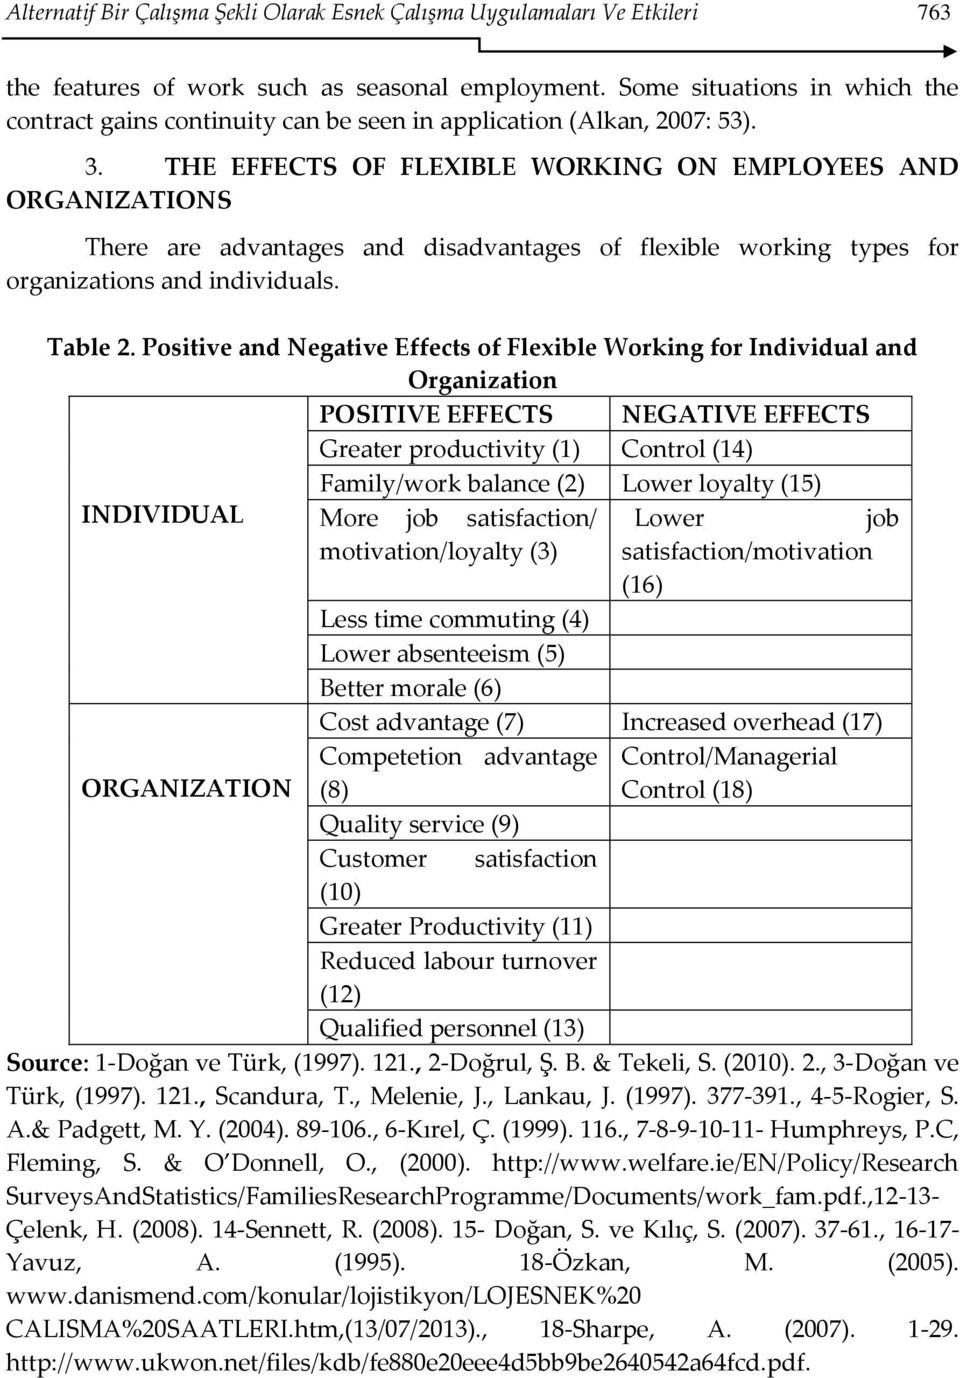 THE EFFECTS OF FLEXIBLE WORKING ON EMPLOYEES AND ORGANIZATIONS There are advantages and disadvantages of flexible working types for organizations and individuals. Table 2.